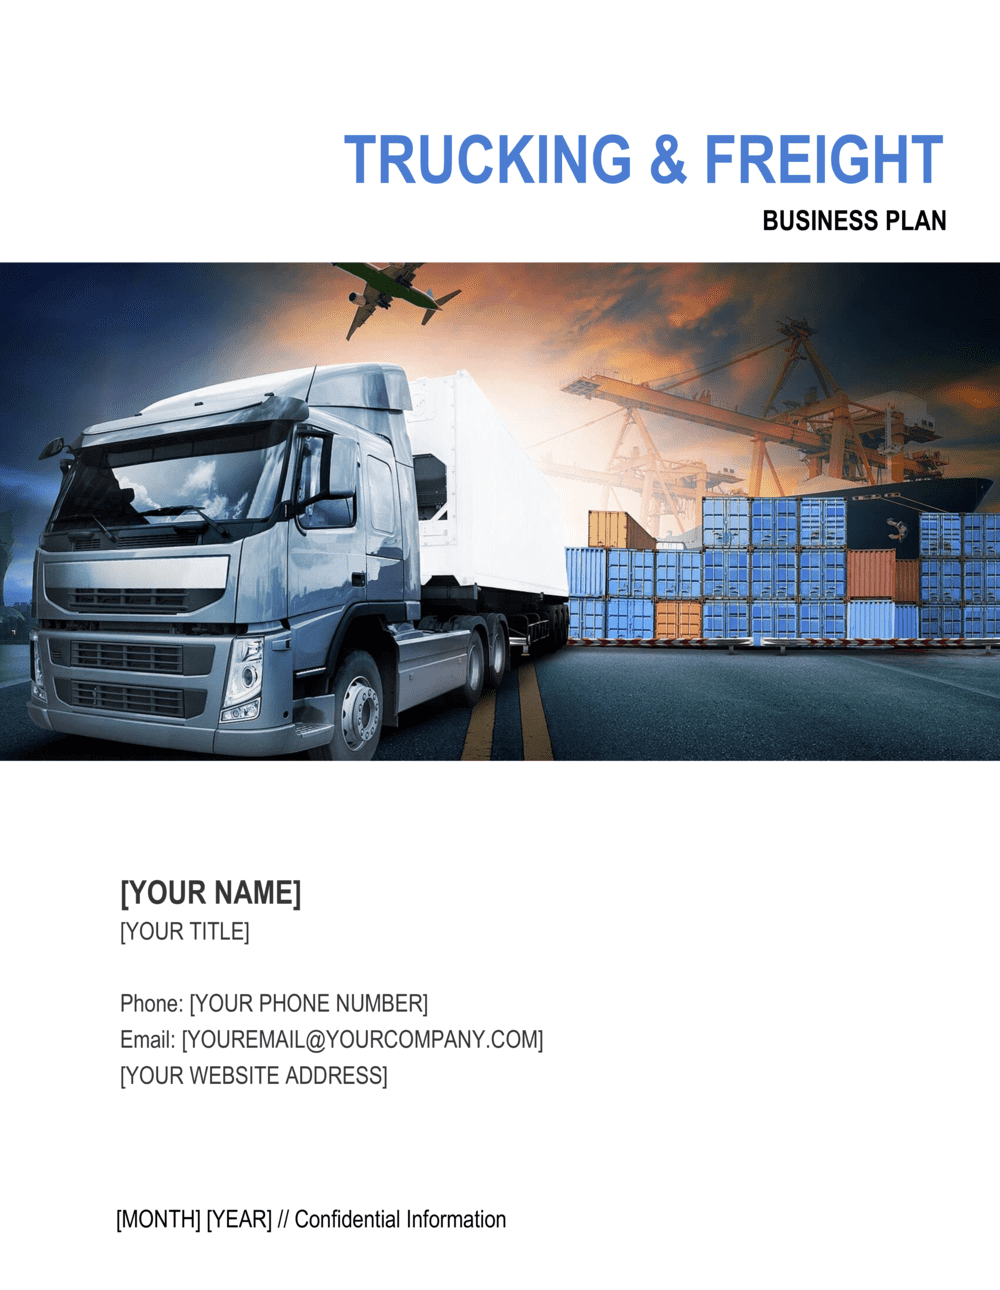 Business-in-a-Box's Trucking and Freight Company Business Plan Template